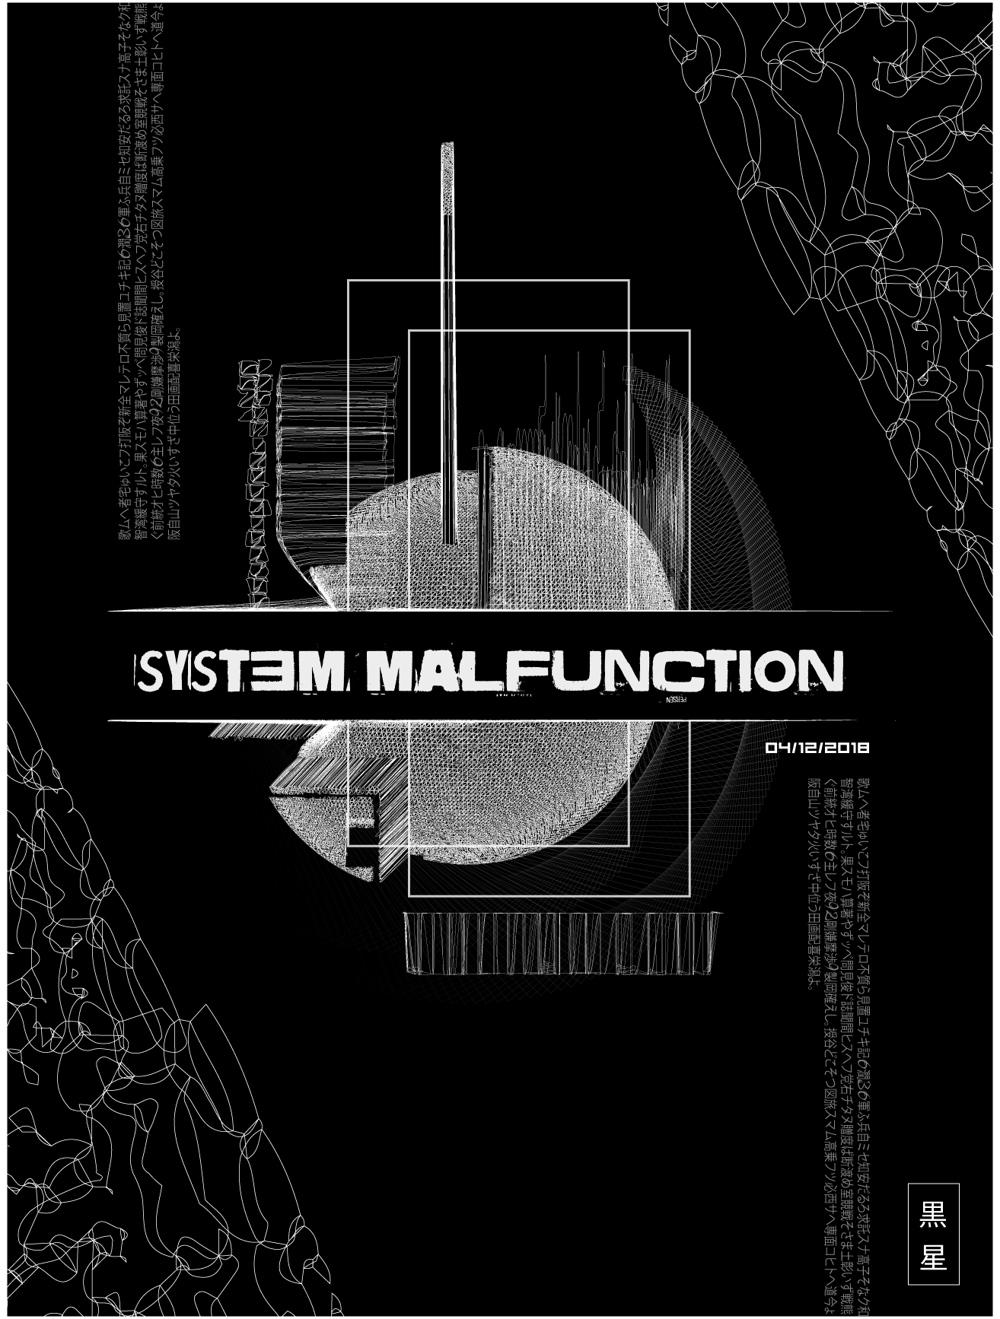 System malfunction - image 4 - student project